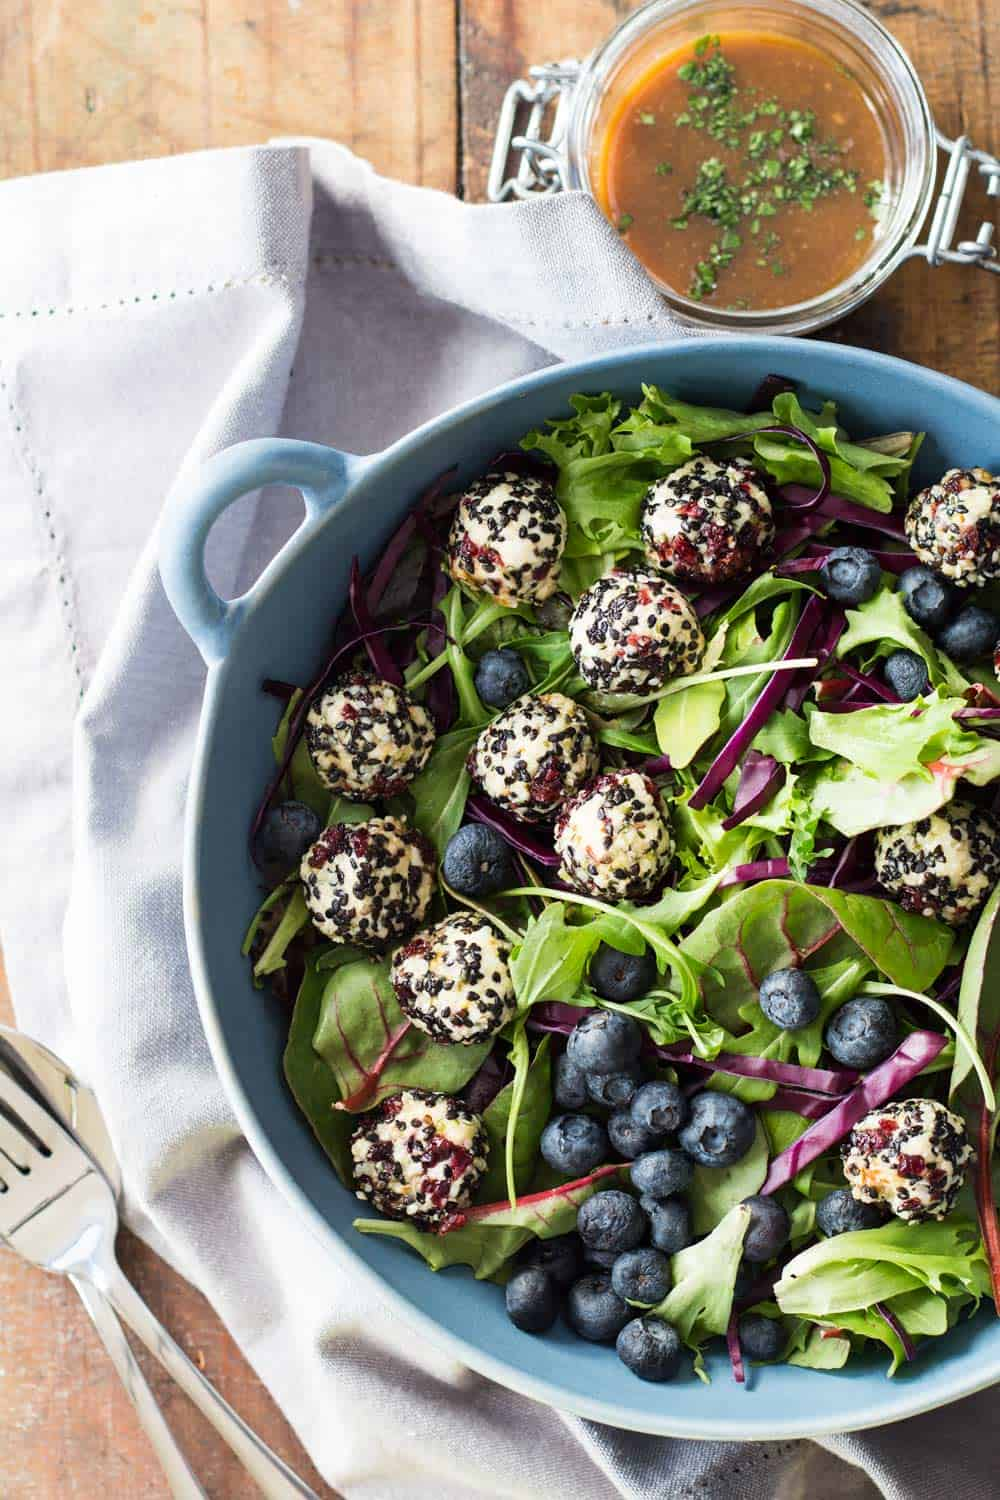 Seeded Warm Goat Cheese Salad